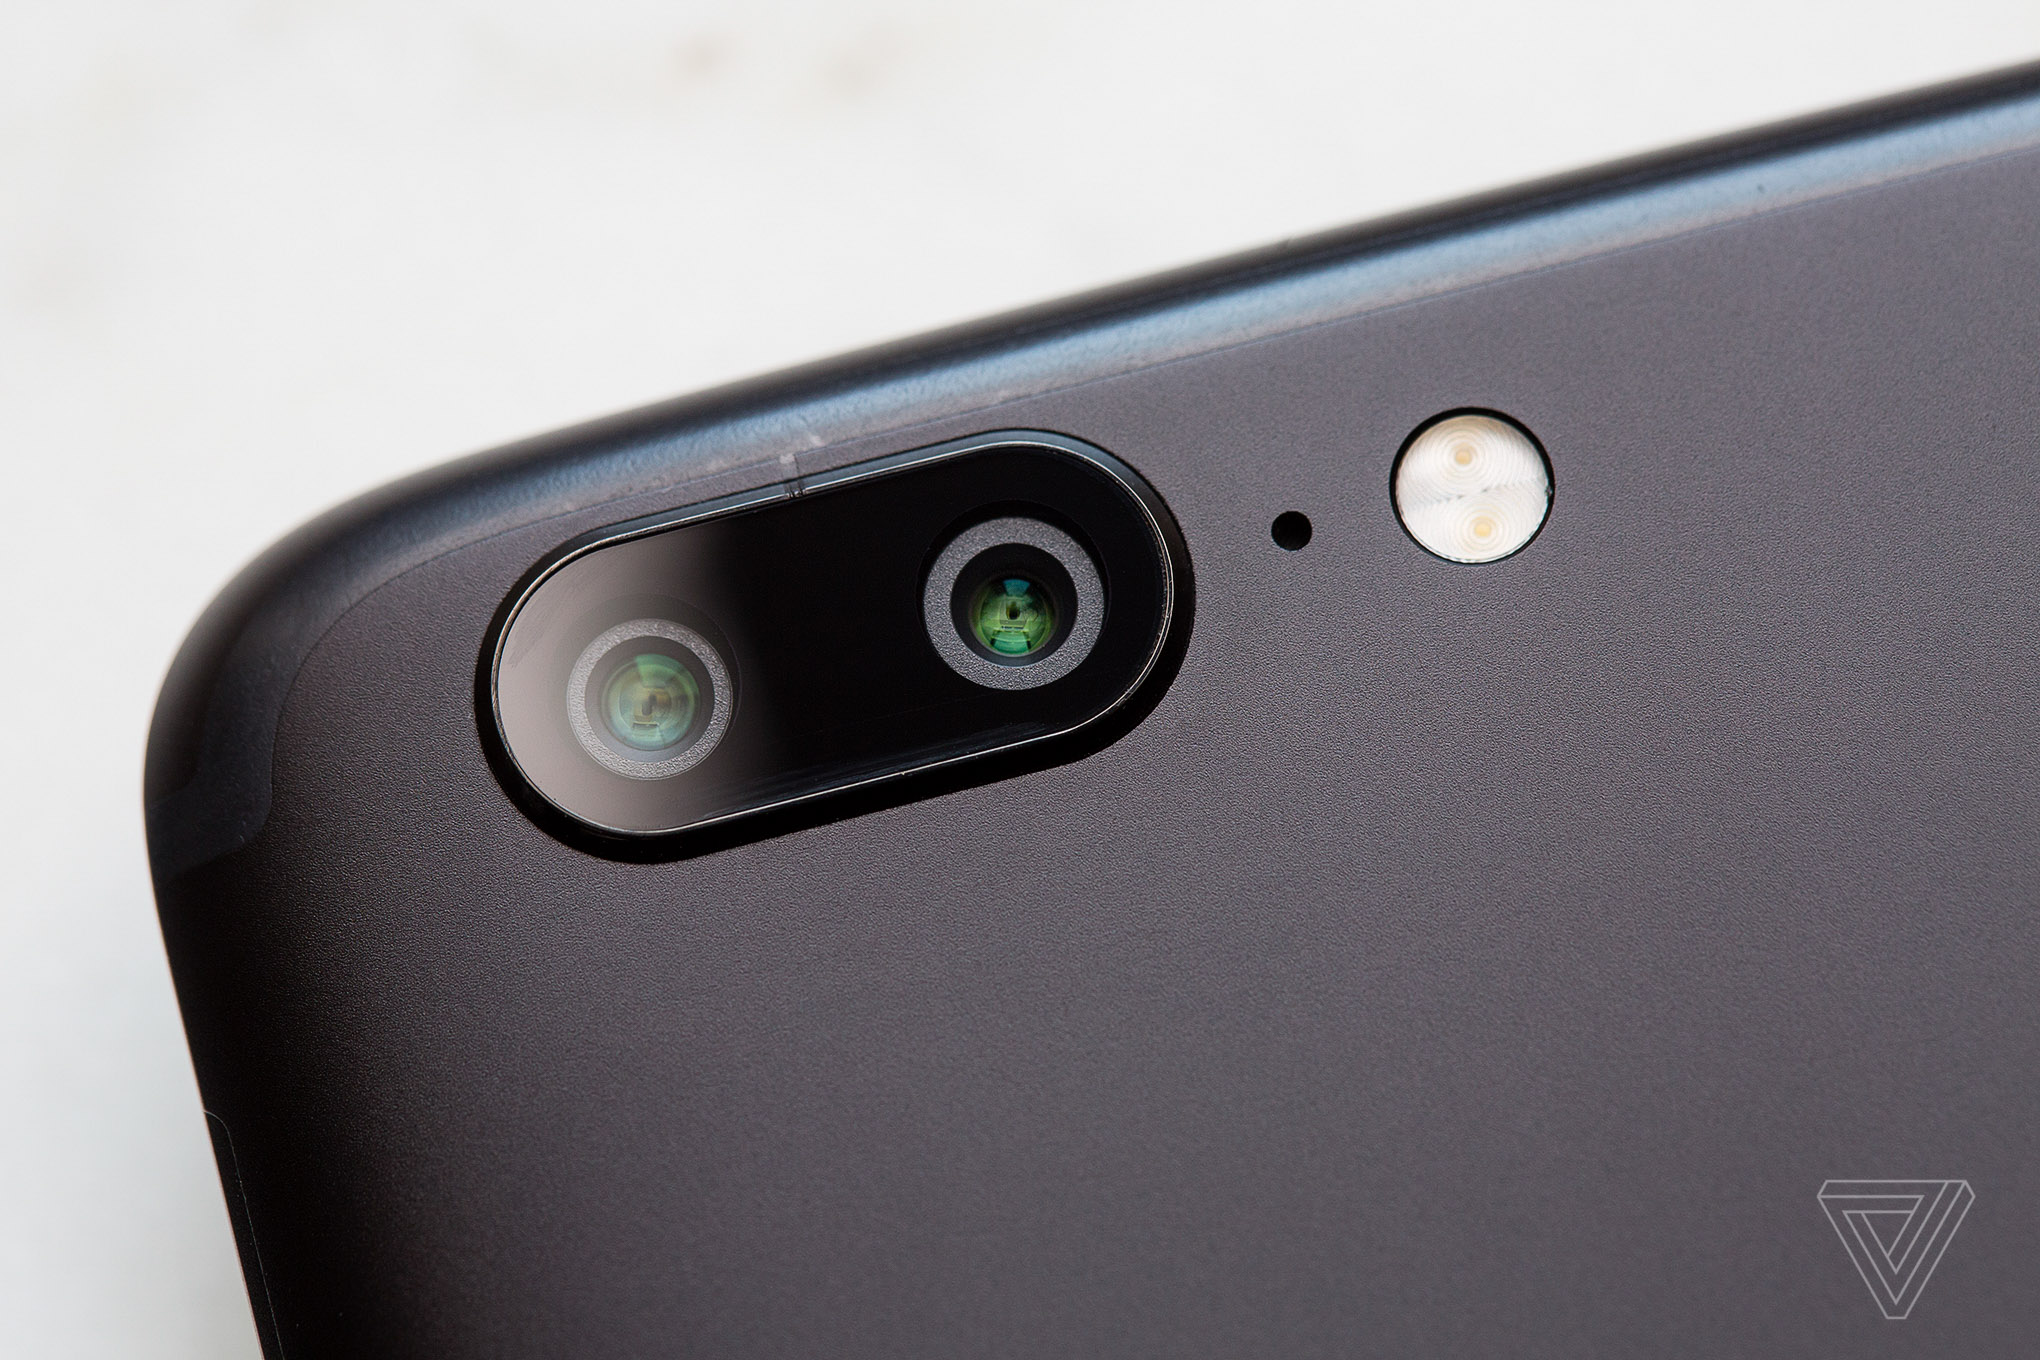 one thing the galaxy s8 and the majority of other android phones donu0027t have is a dualcamera system like the the oneplus 5 recreates appleu0027s